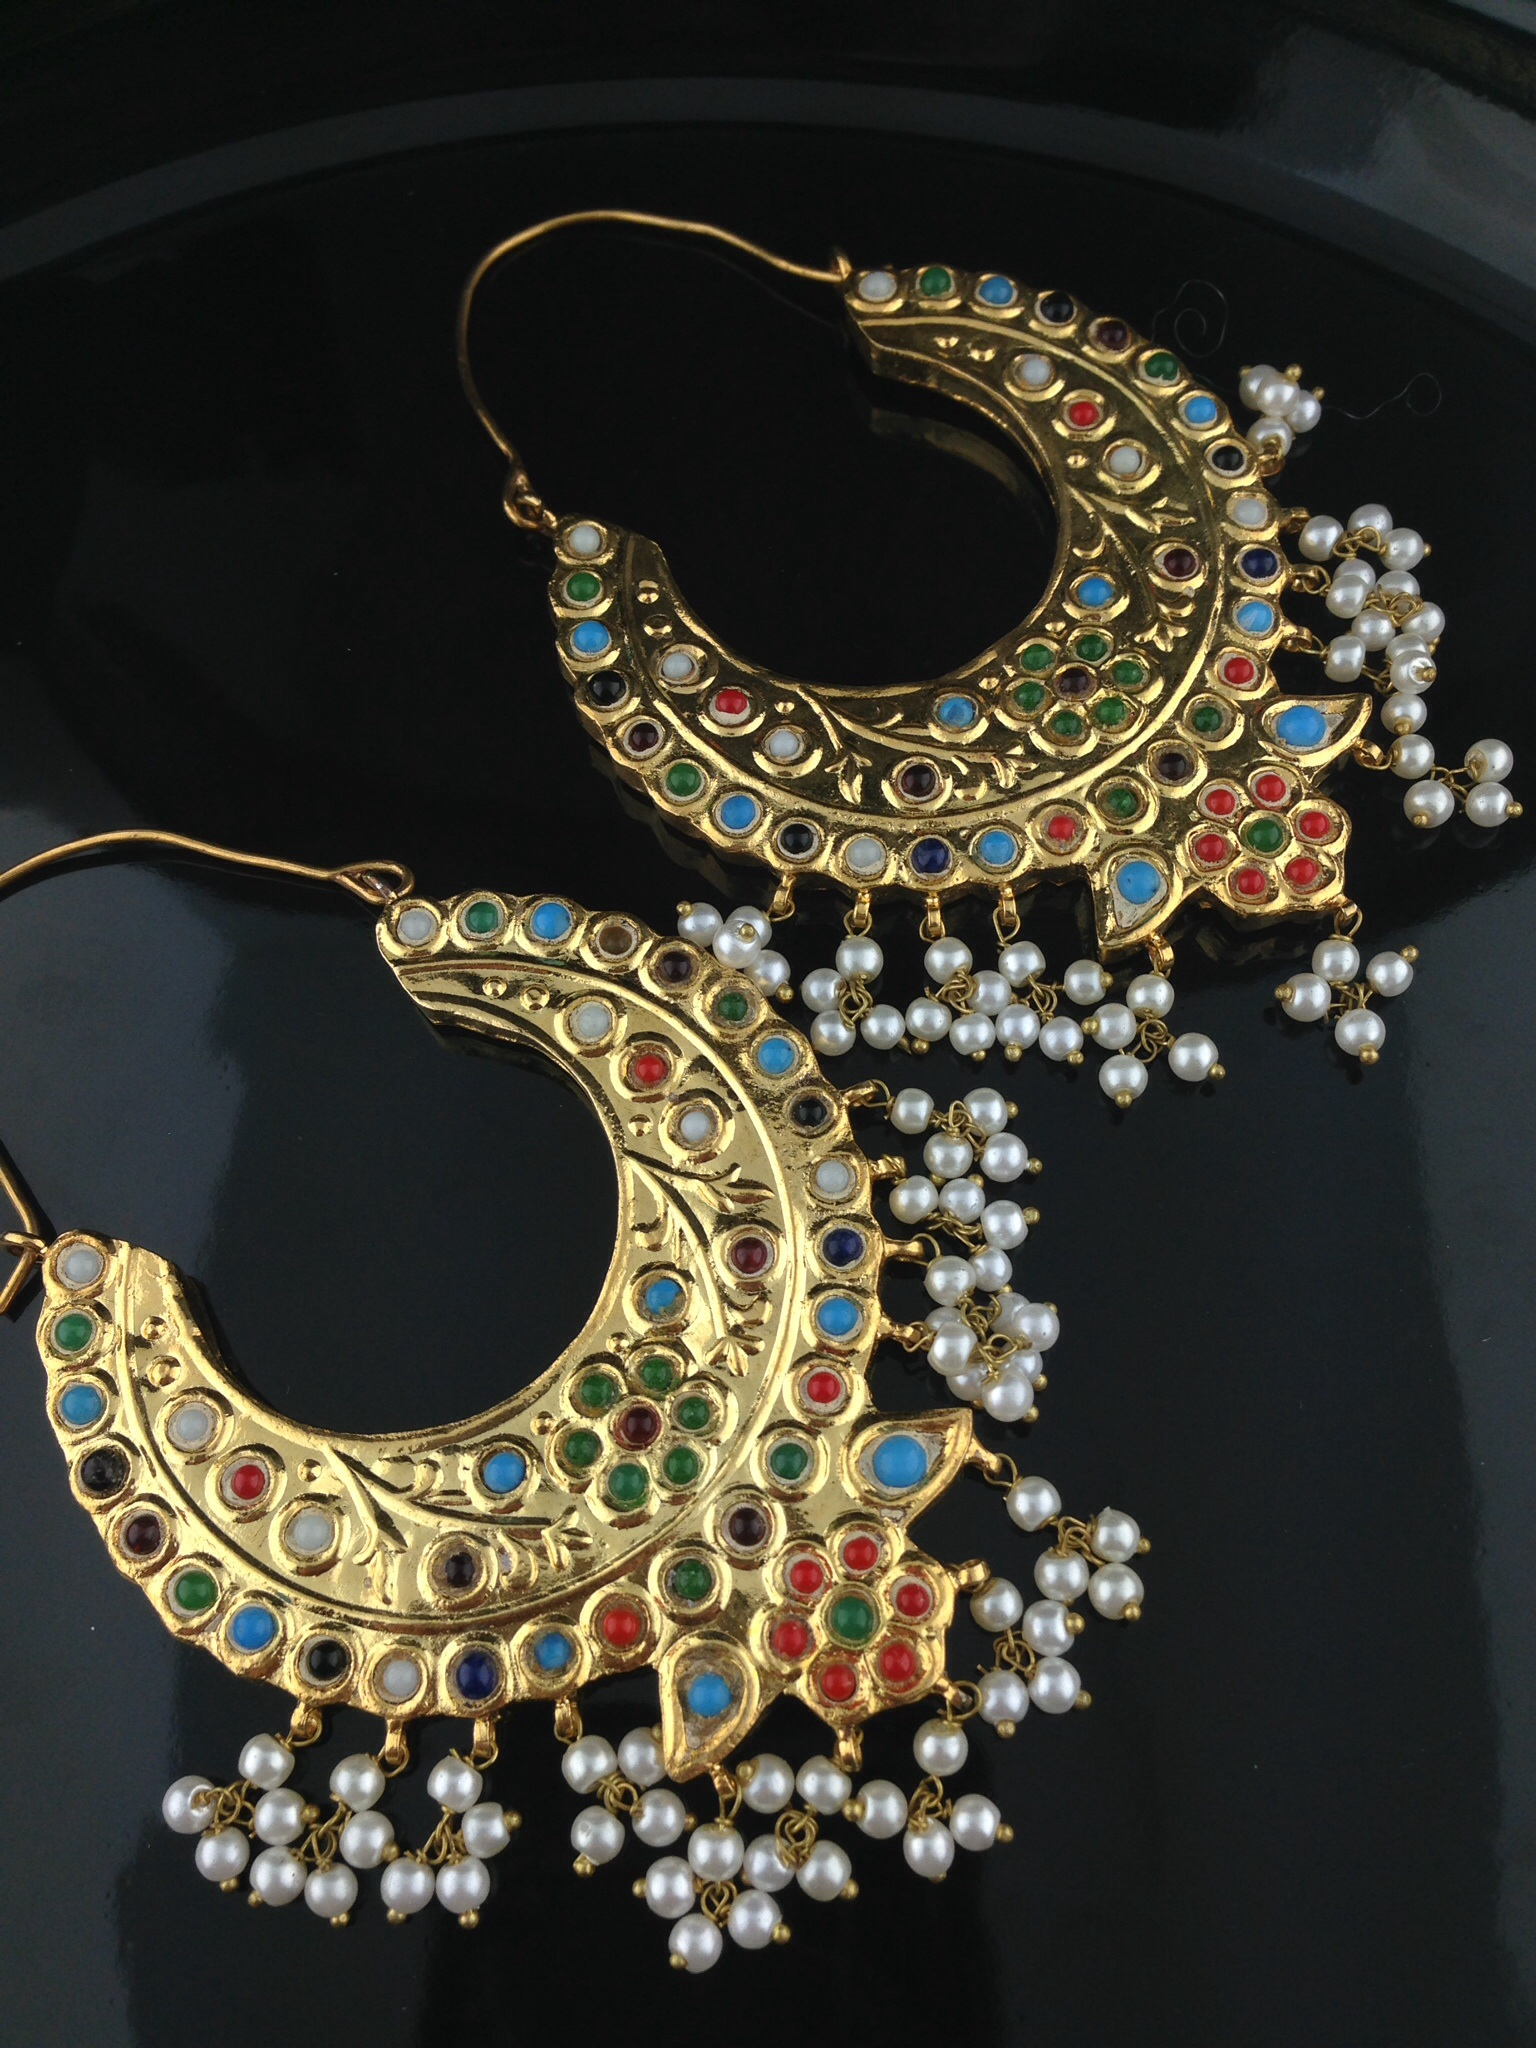 Kundan Multi Color Chand Bali Earrings Indian Ic And Gold Jewelry In Atlanta Online